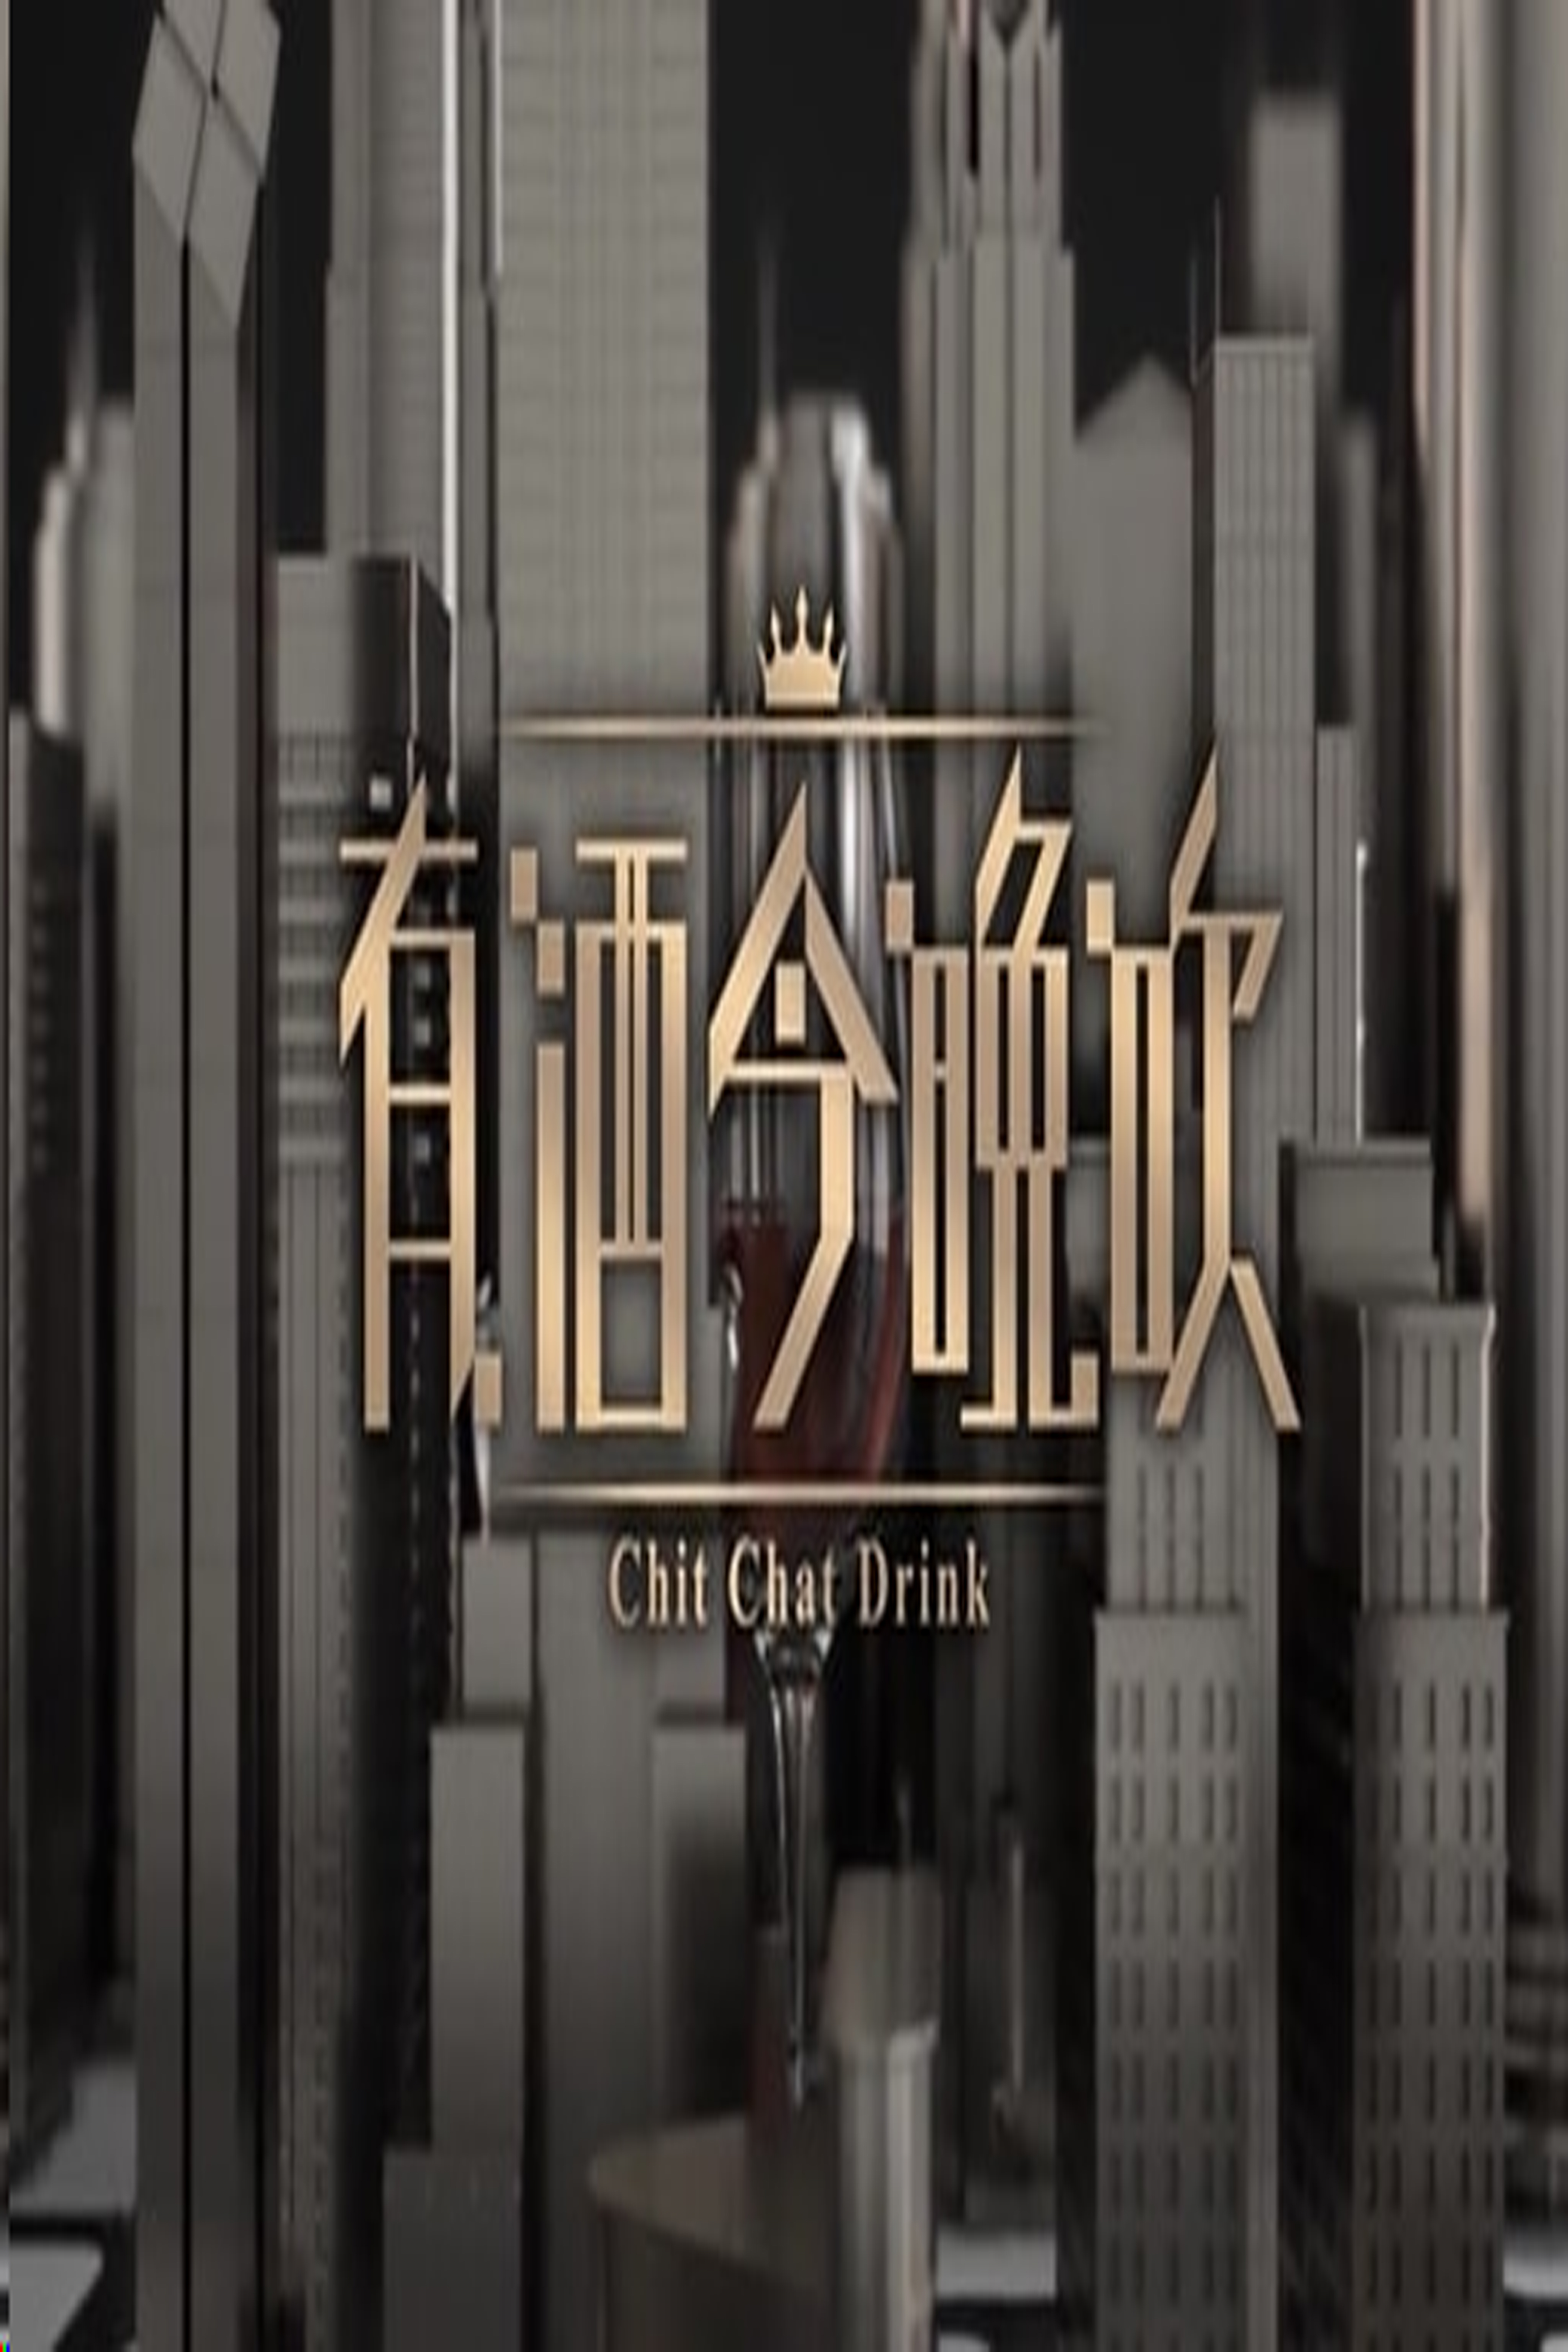 Talker - Chit Chat Drink - 晚吹 - 有酒今晚吹